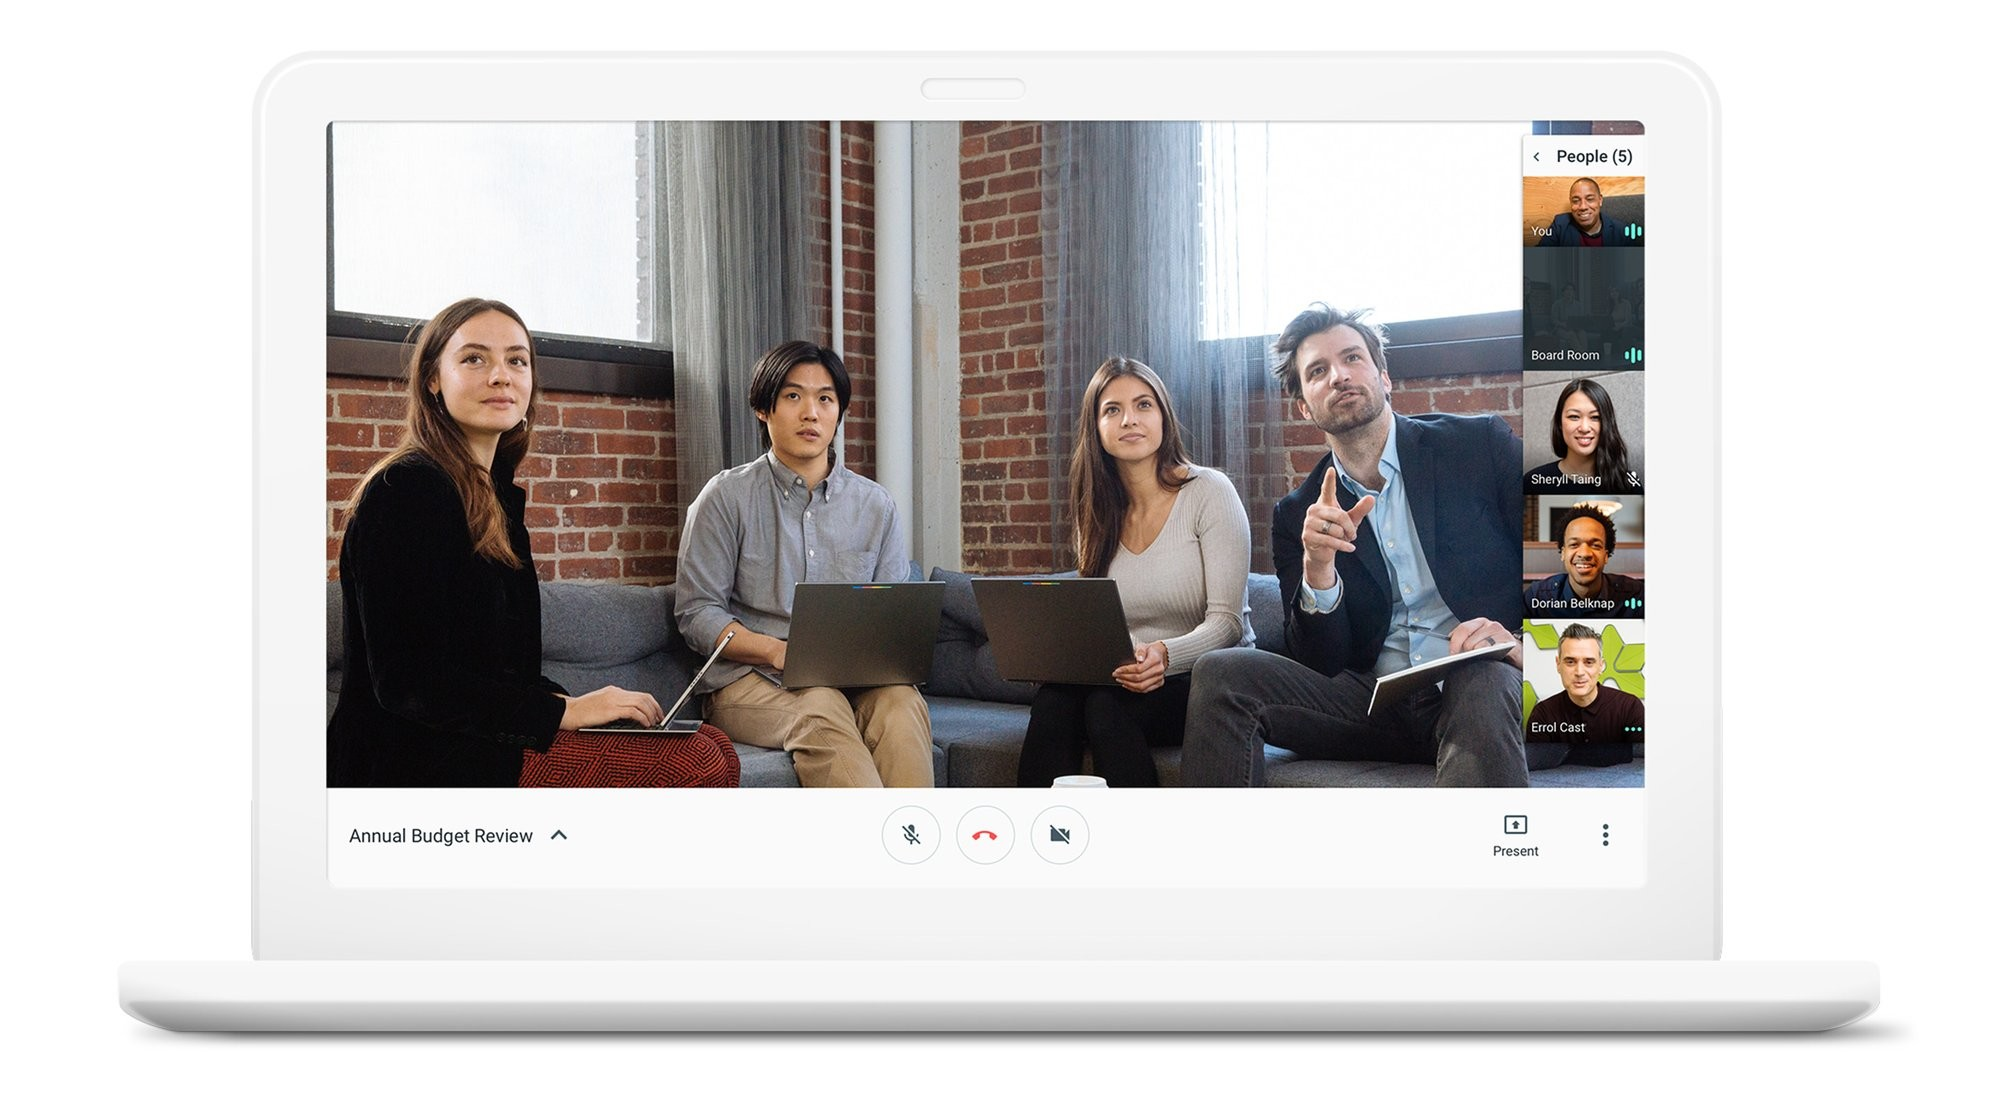 Hangouts Chat and Meet may become available to non G-suite